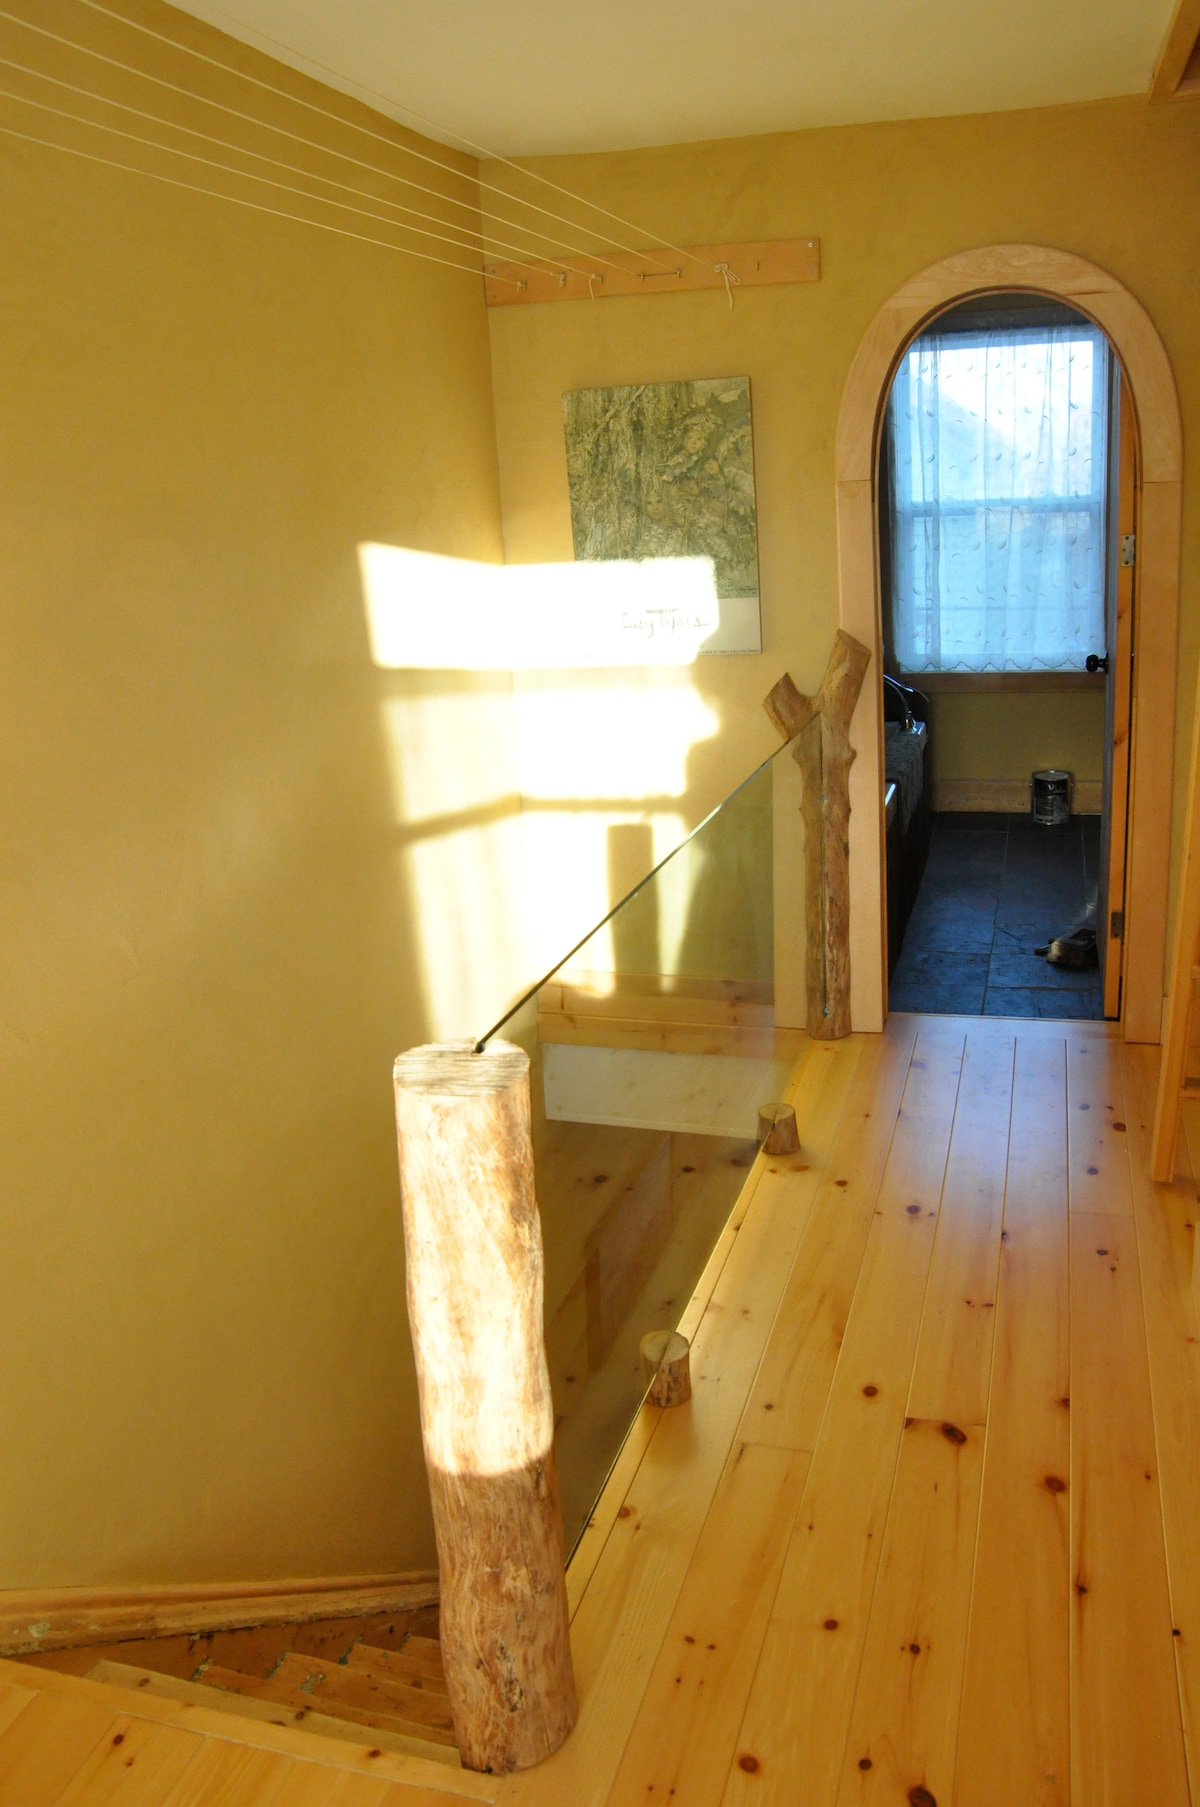 upstairs hall leading into lovely new renovated bathroom with soaker tub and stone sink